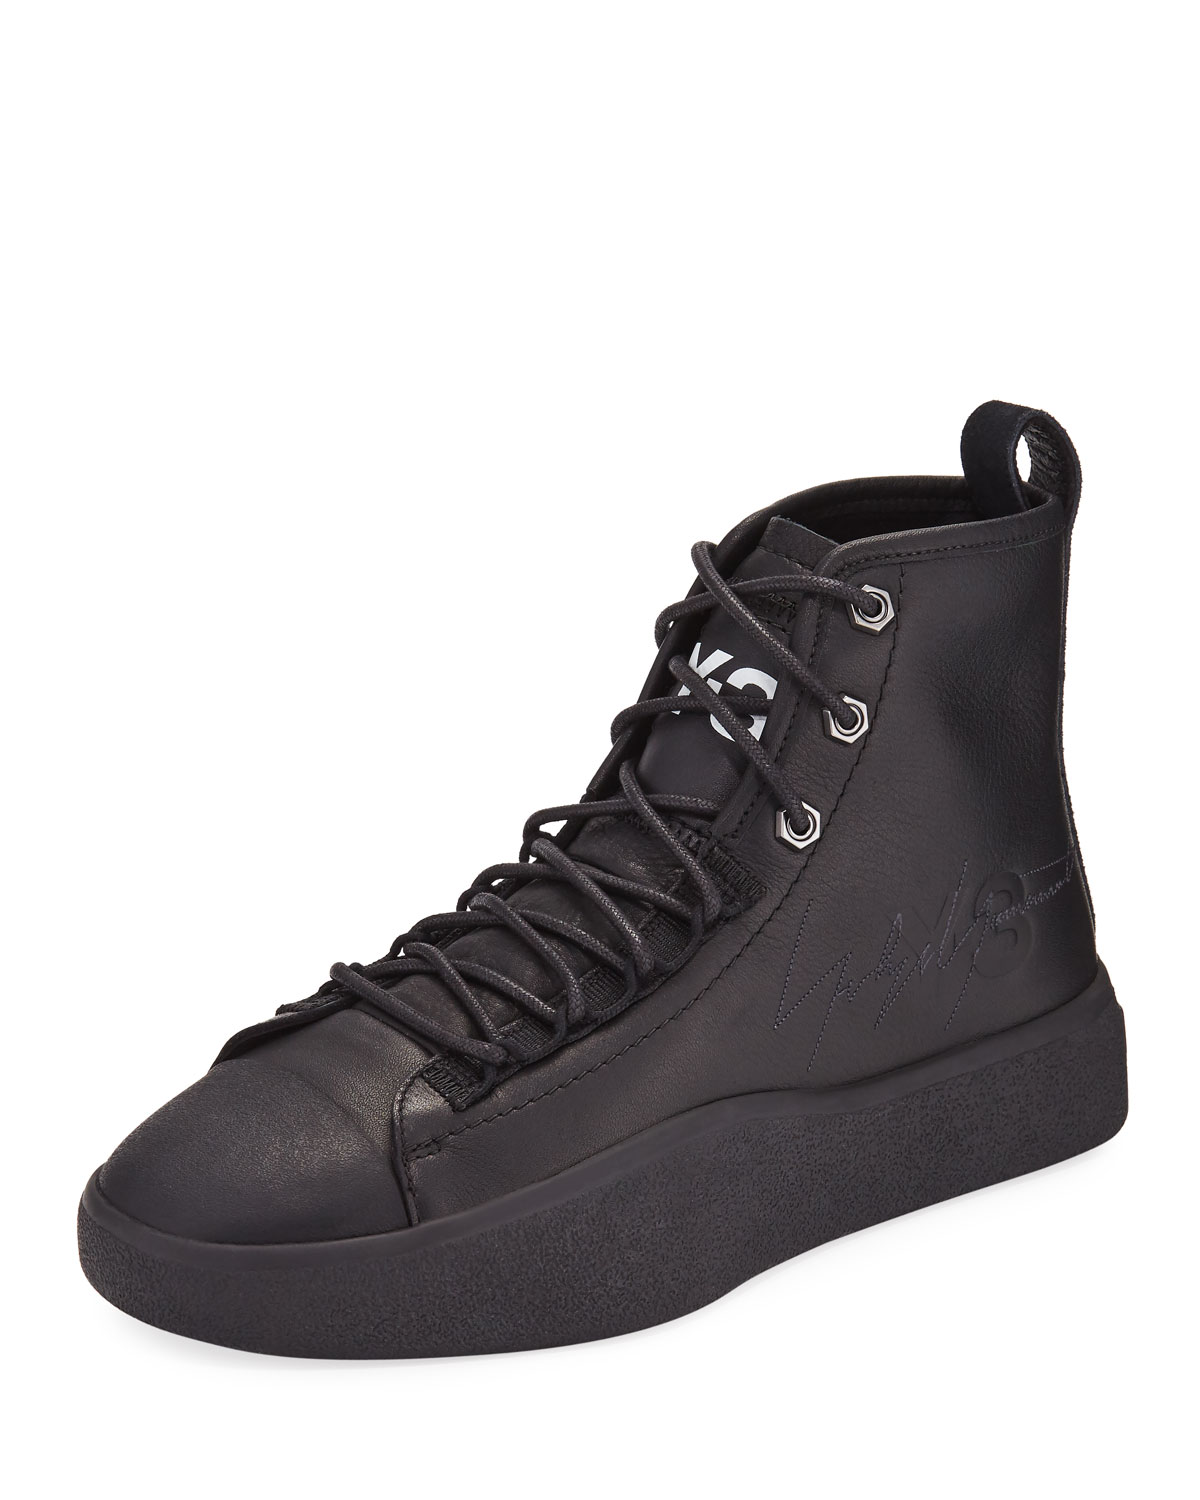 1d5a8d9f4 Y-3 Men s Bashyo Leather High-Top Sneakers